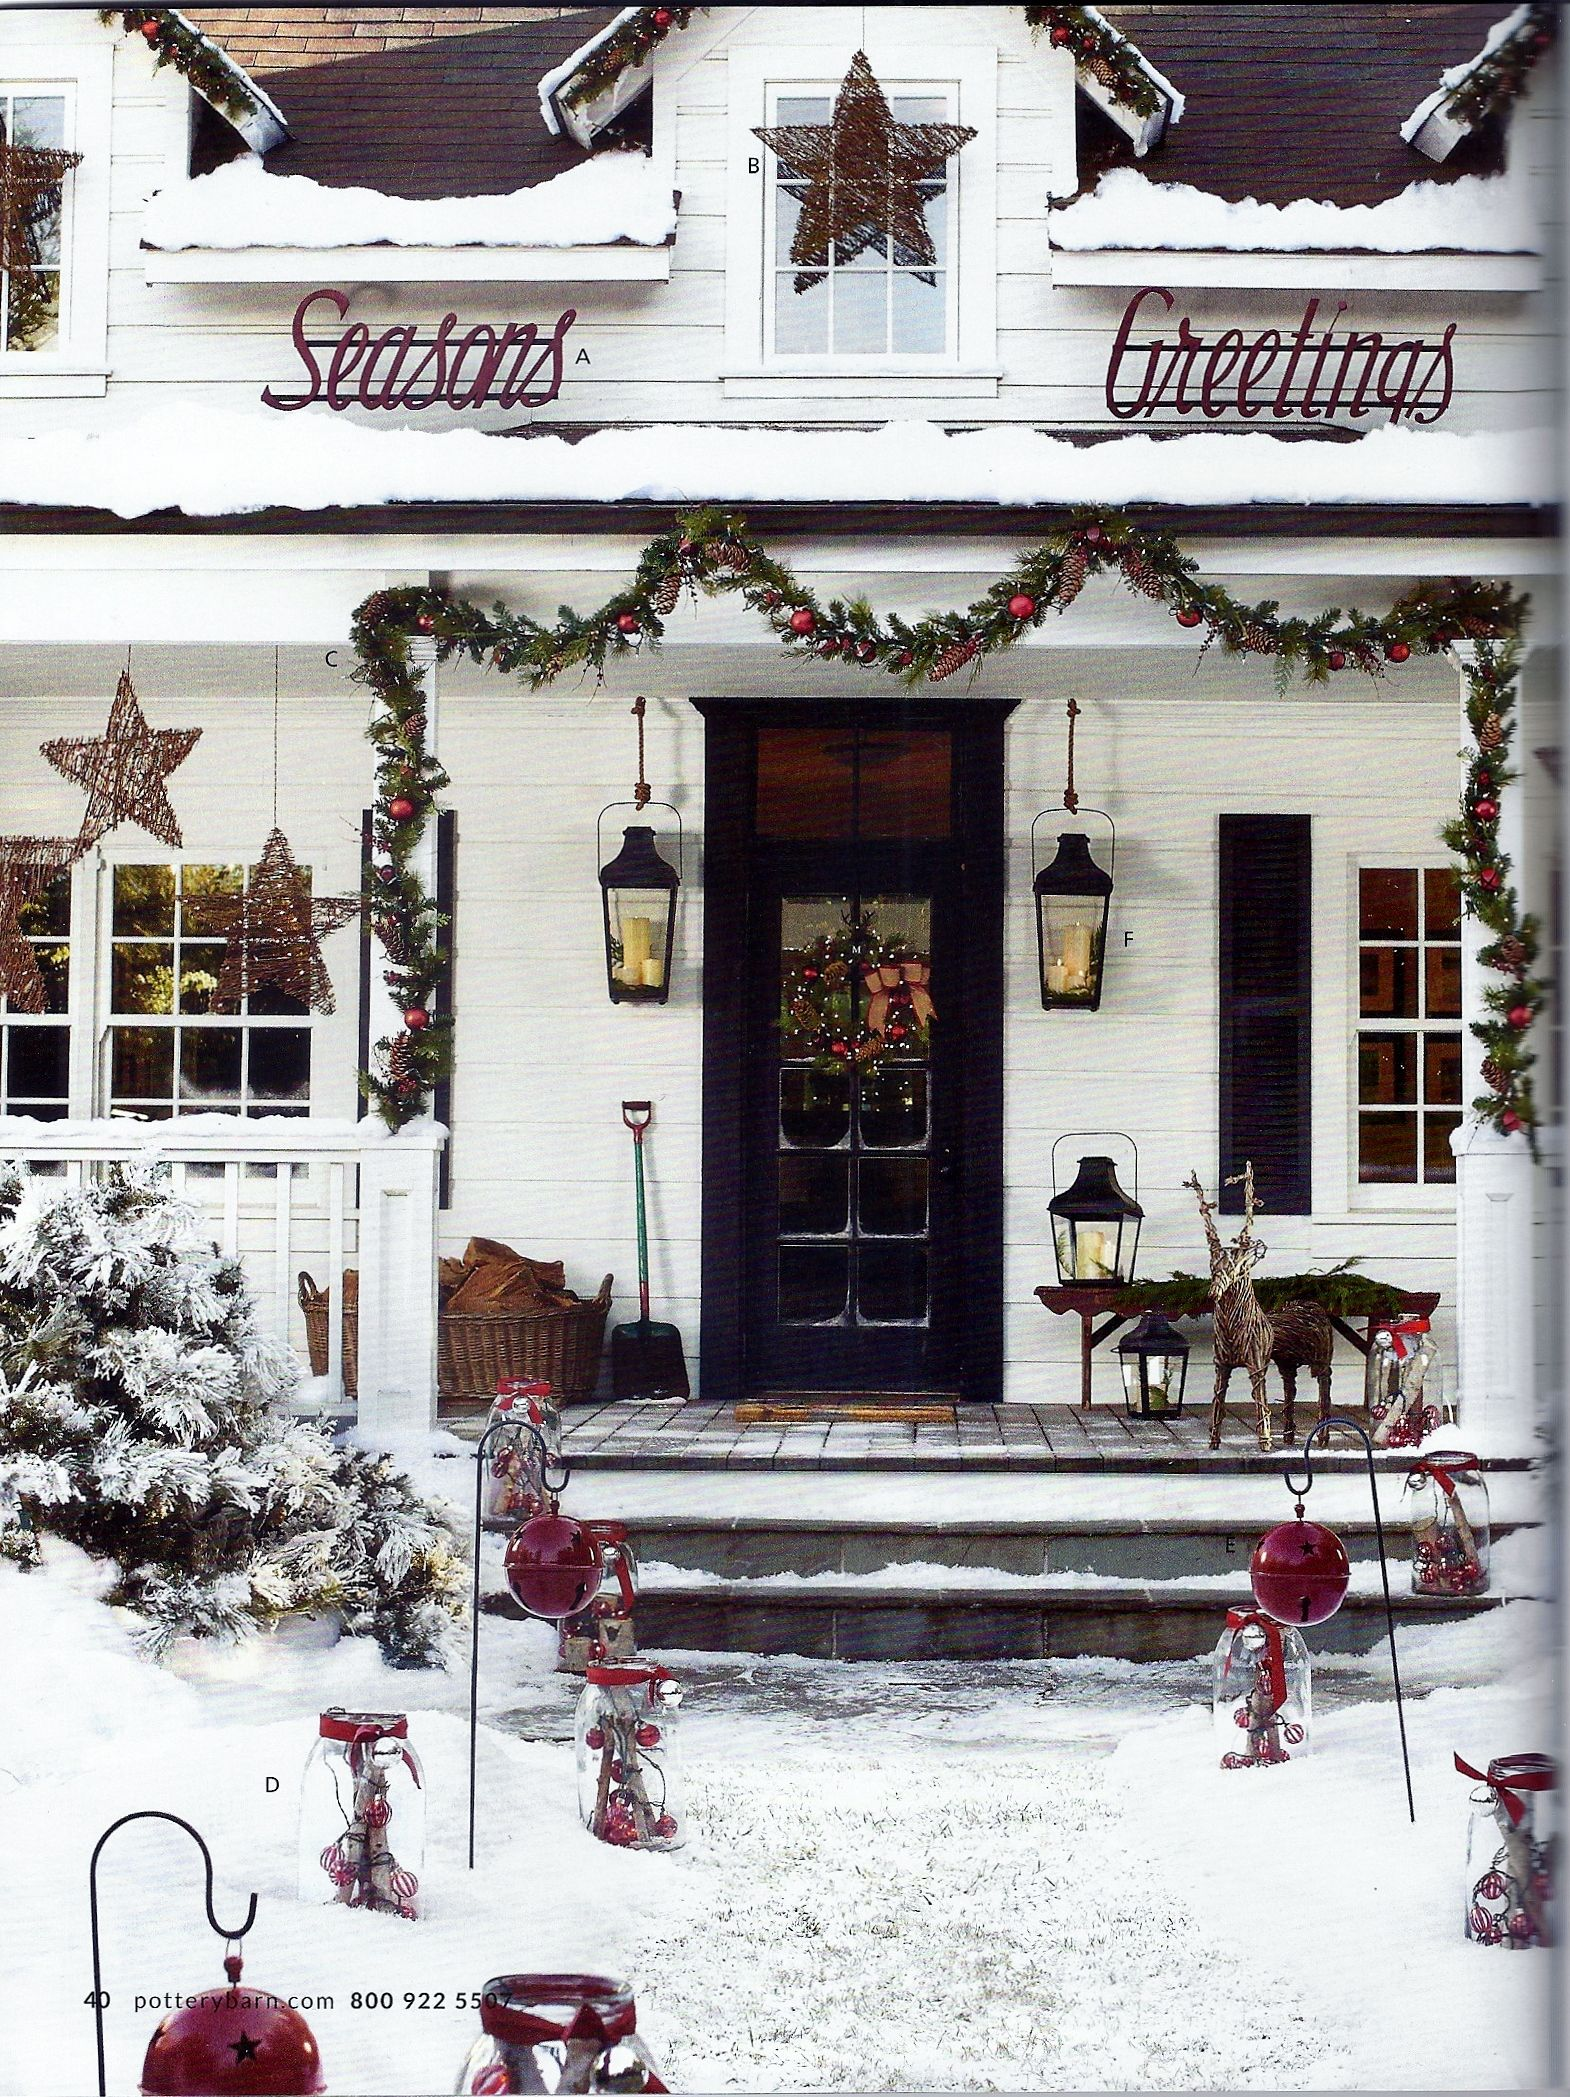 Merry Christmas Decorations Outdoor : Outdoor christmas decor merry